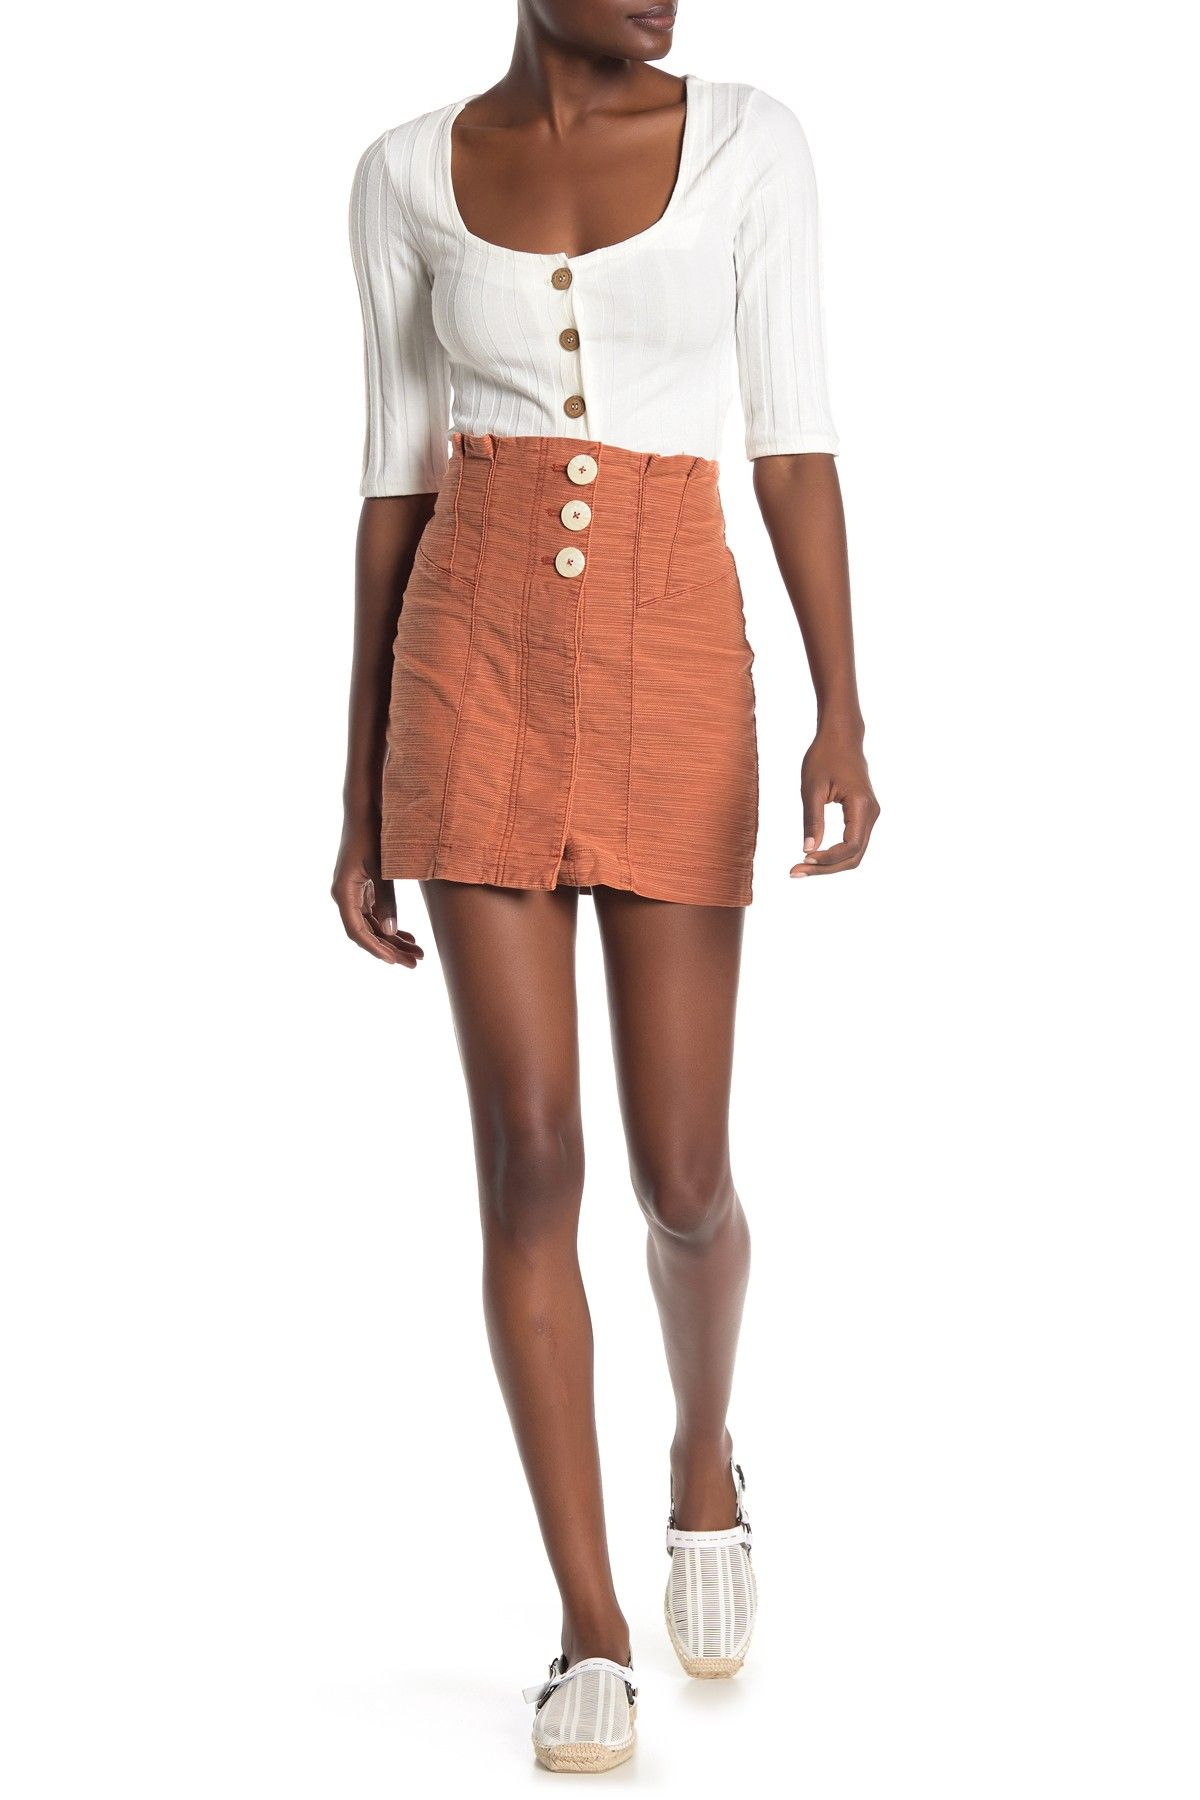 Free People Every Minute Every Hour Mini Skirt Nordstrom Rack